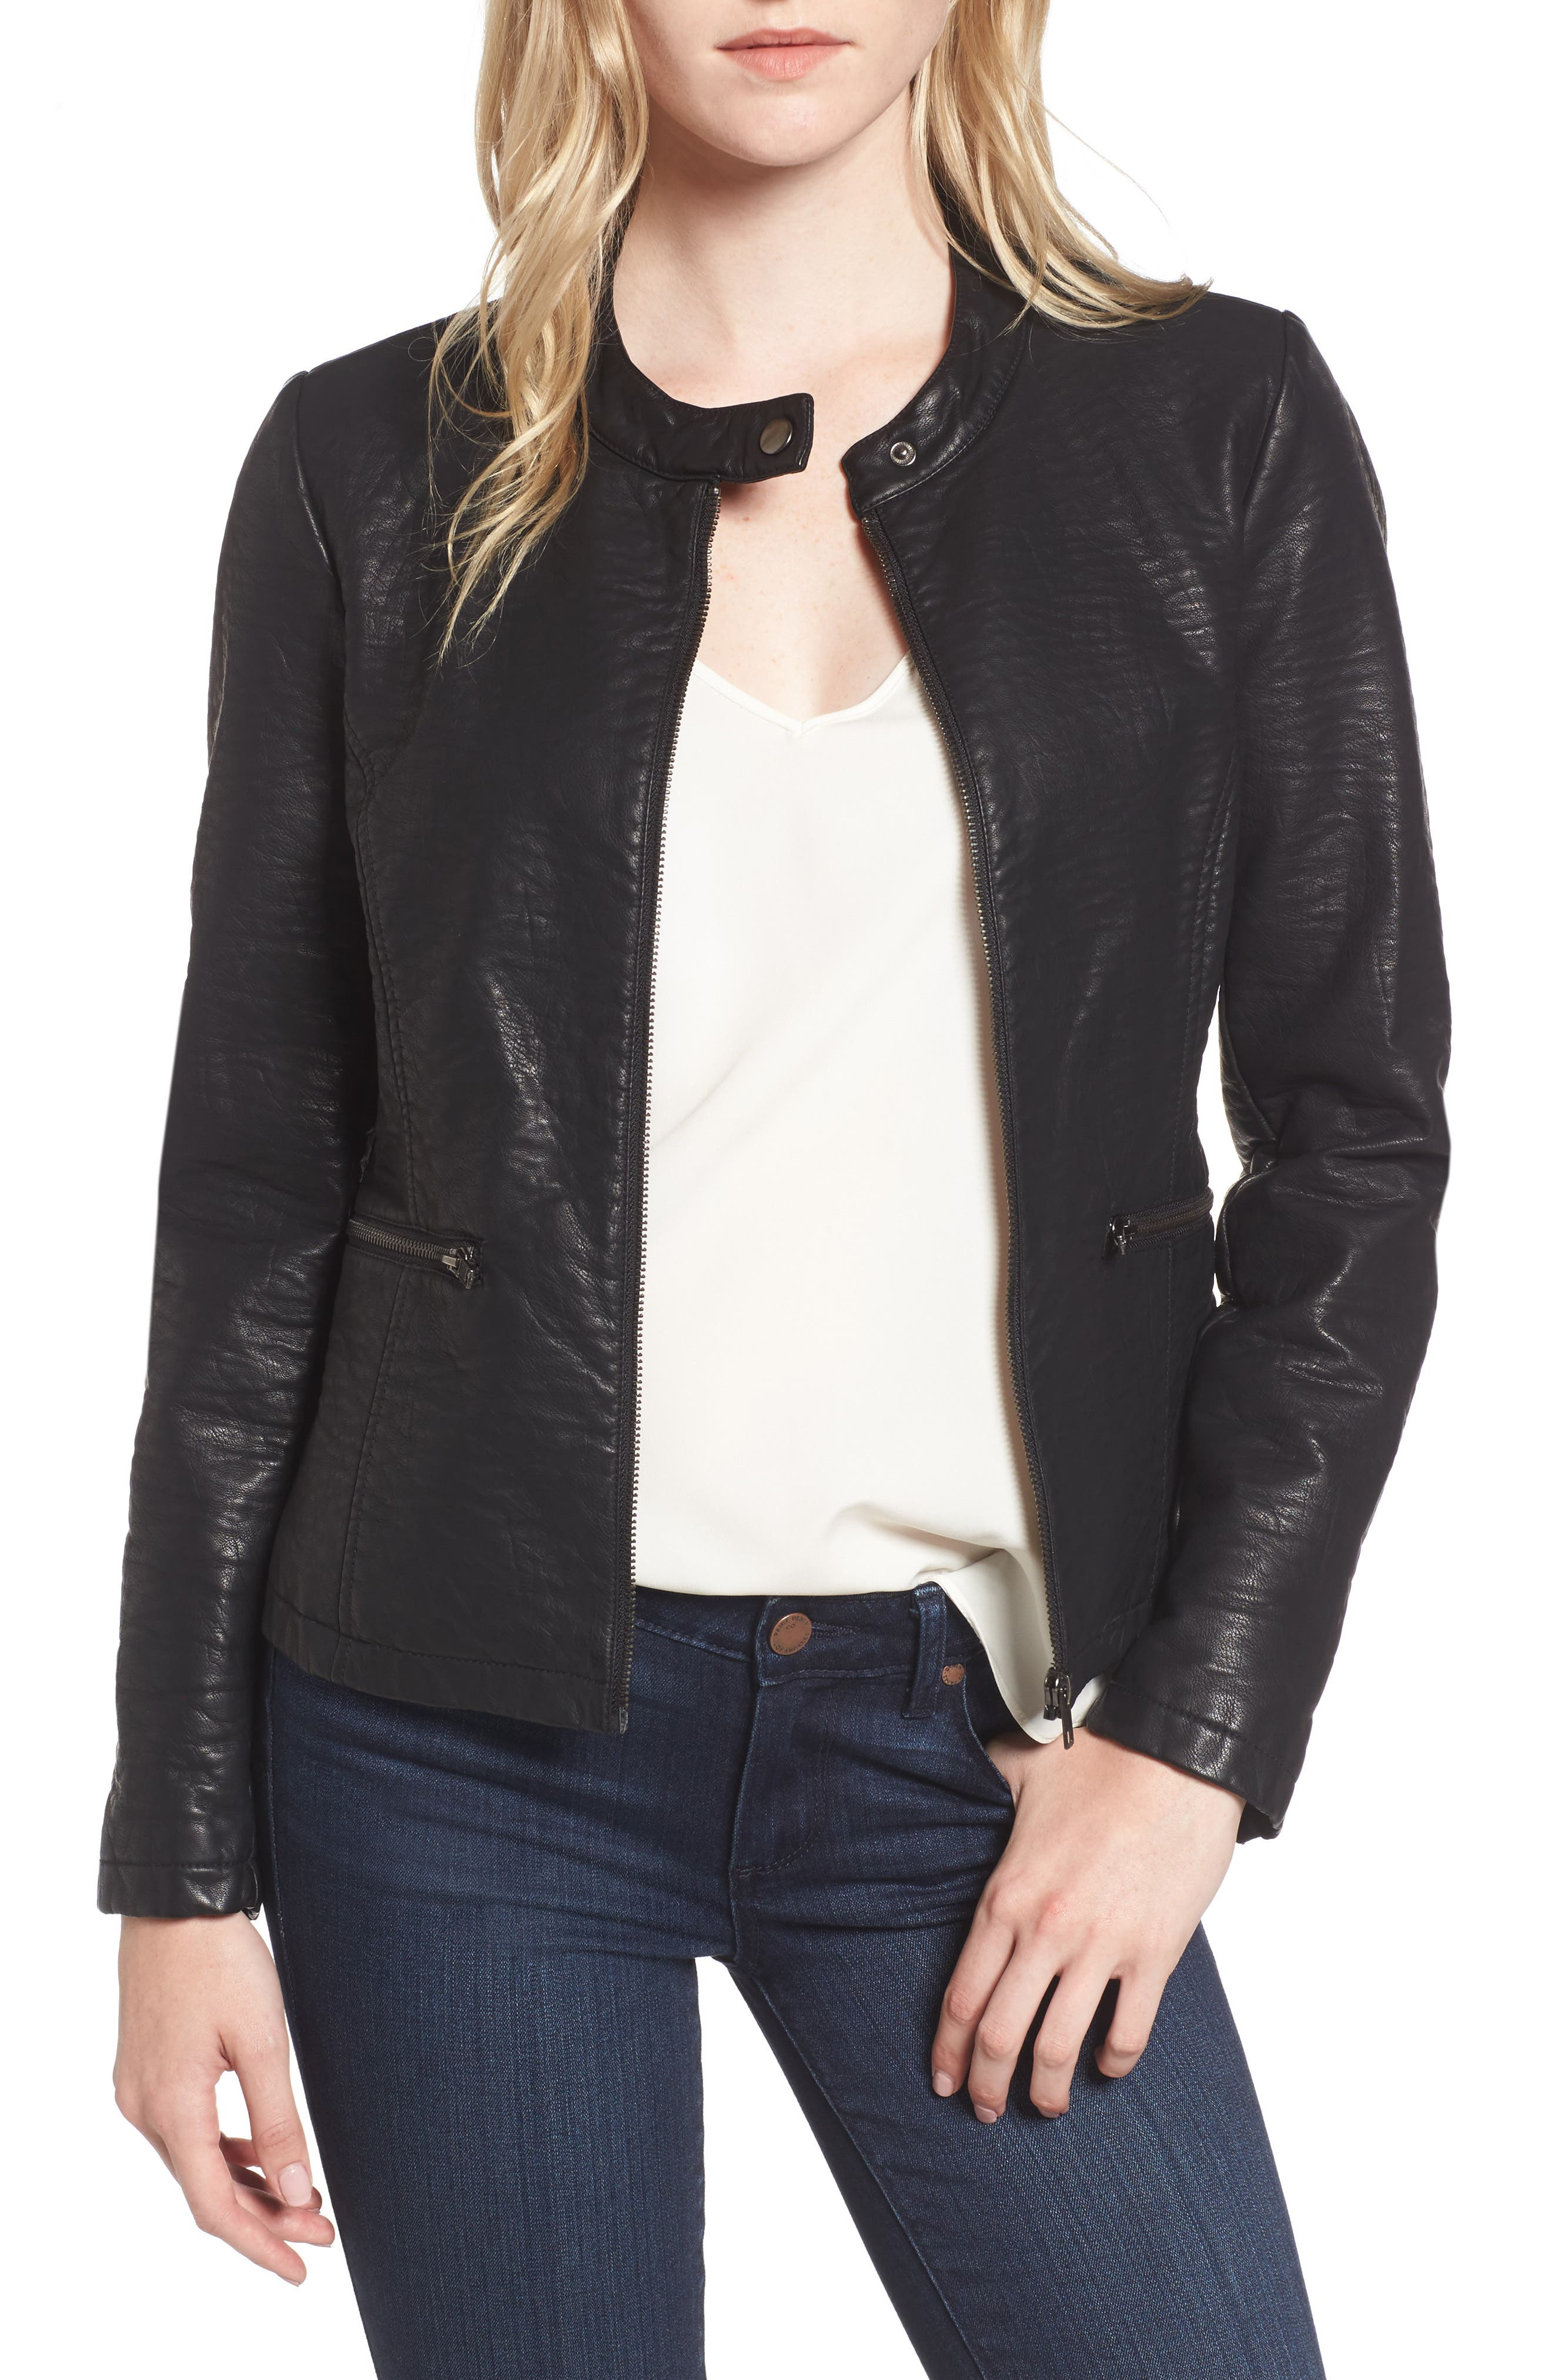 Main Image - cupcakes and cashmere Dolly Faux Leather Jacket